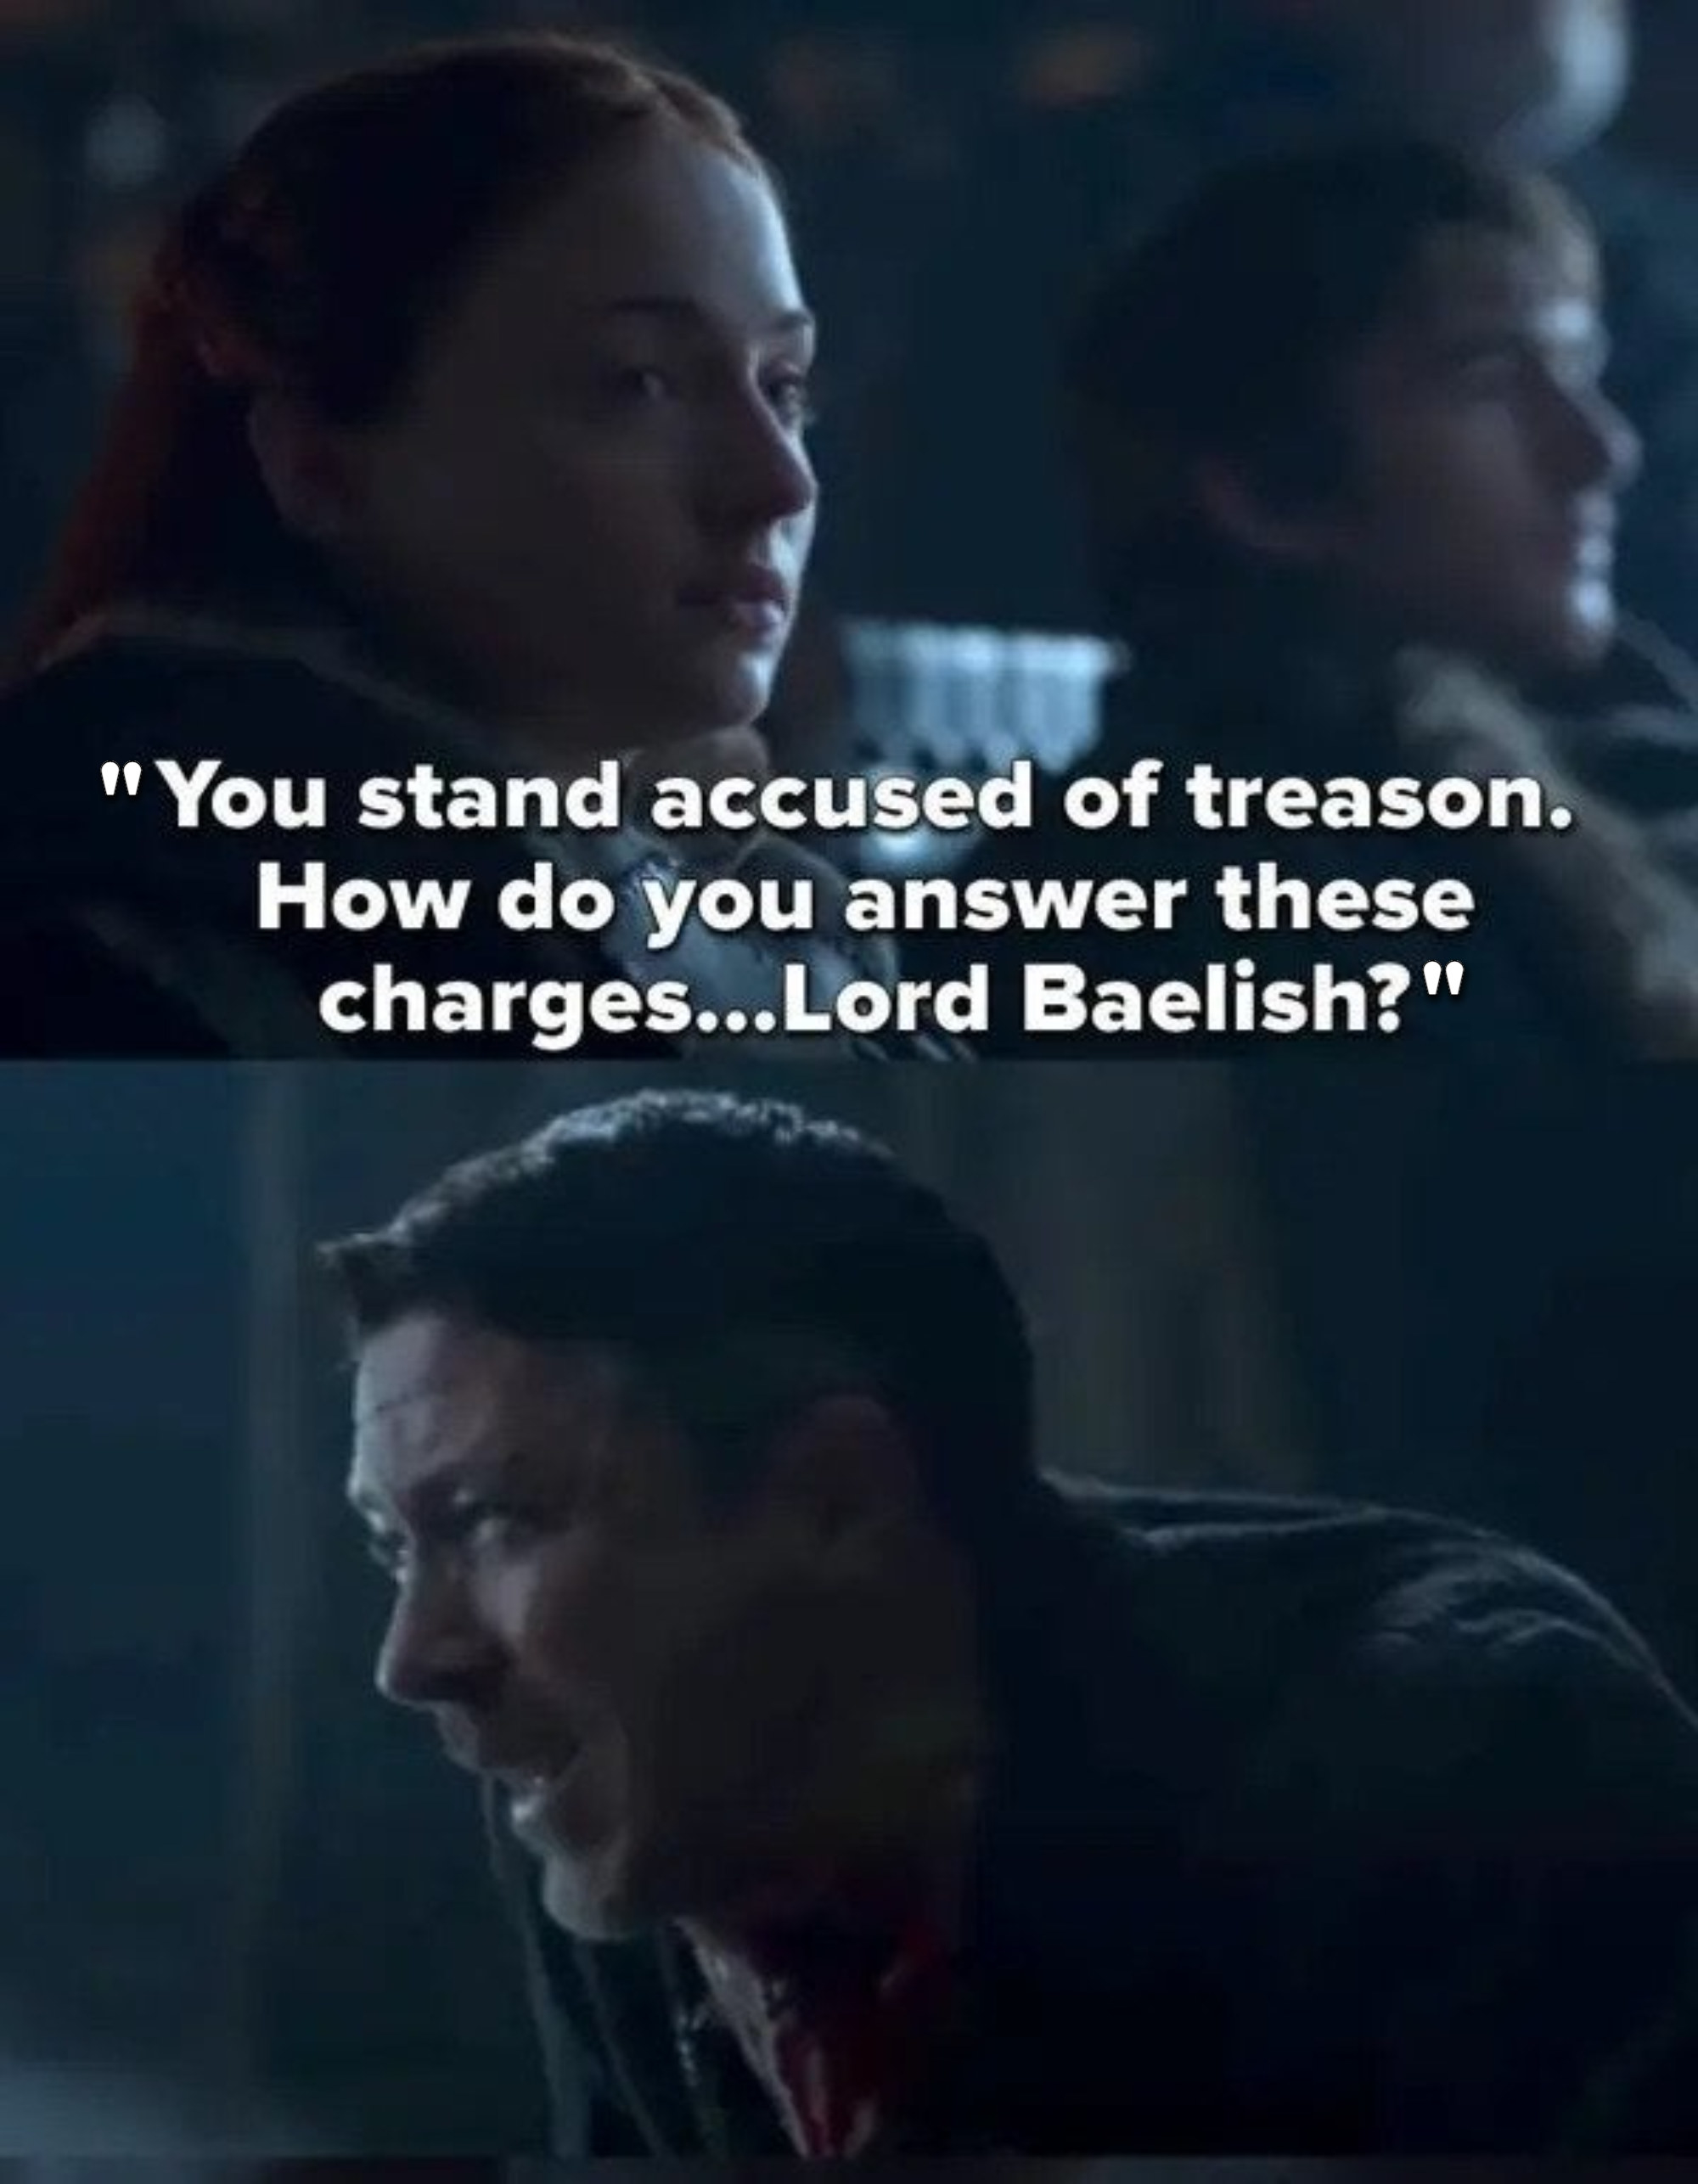 """Sansa says """"You stand accused of treason; how do you answer these charges...Lord Baelish?"""" then Arya slits his throat"""